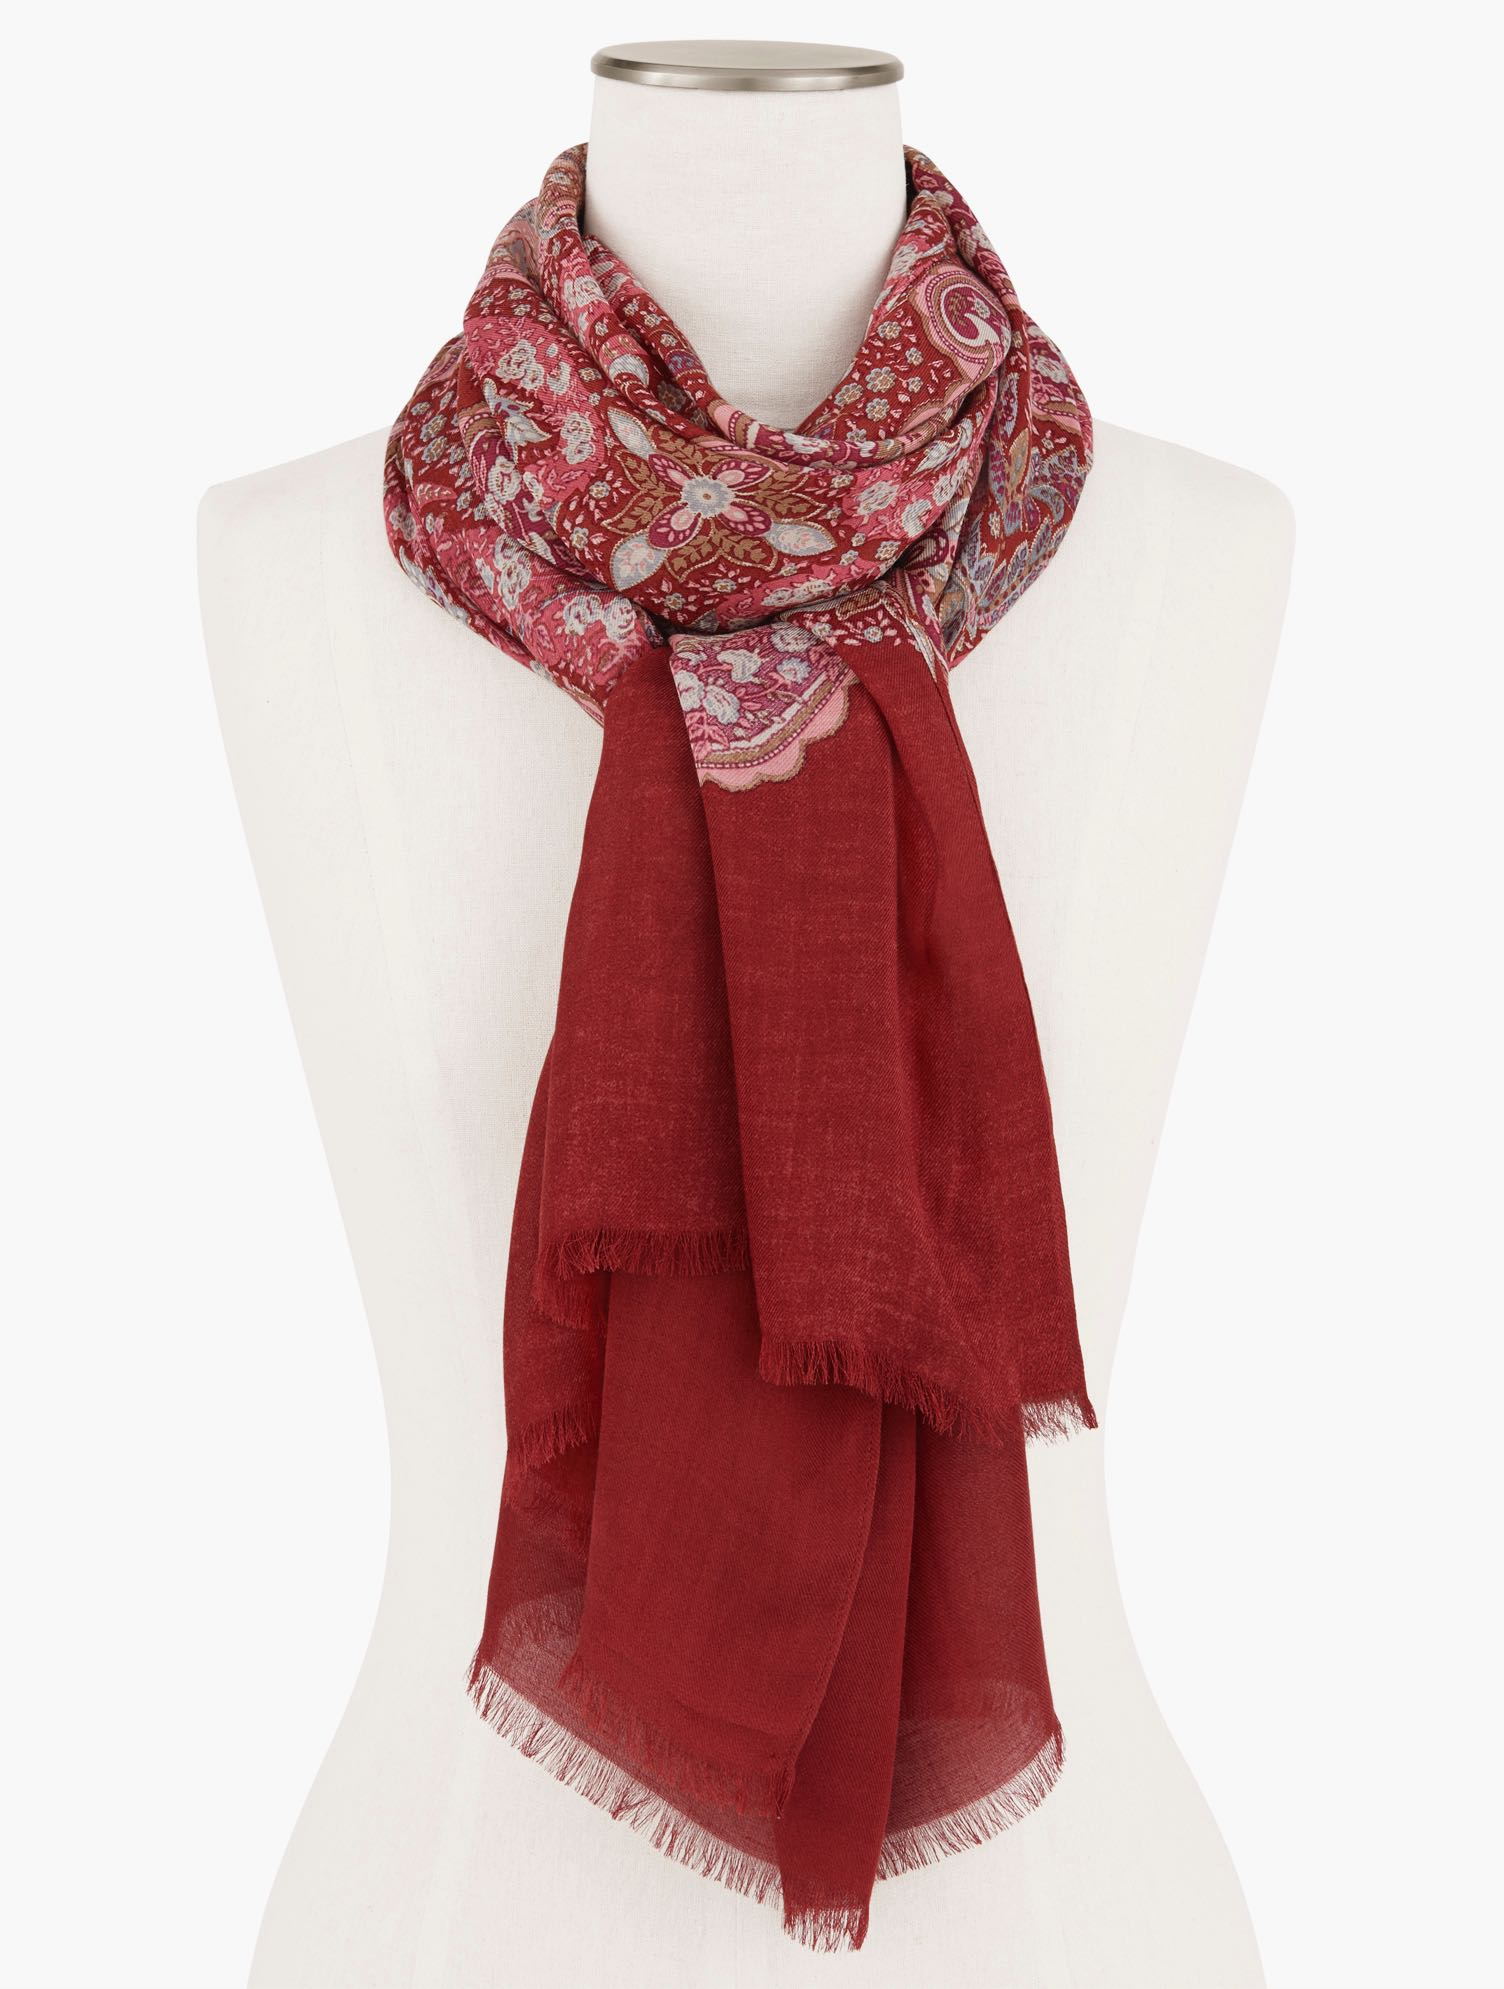 Crafted from silk and modal. In pretty paisley. The perfect accent. Features Oblong ScarfImported Fit: 27x72 inches Material: 70% Modal, 30% Silk Care: Dry Clean Flourish Paisley Oblong Scarf - Rosewood - 001 Talbots